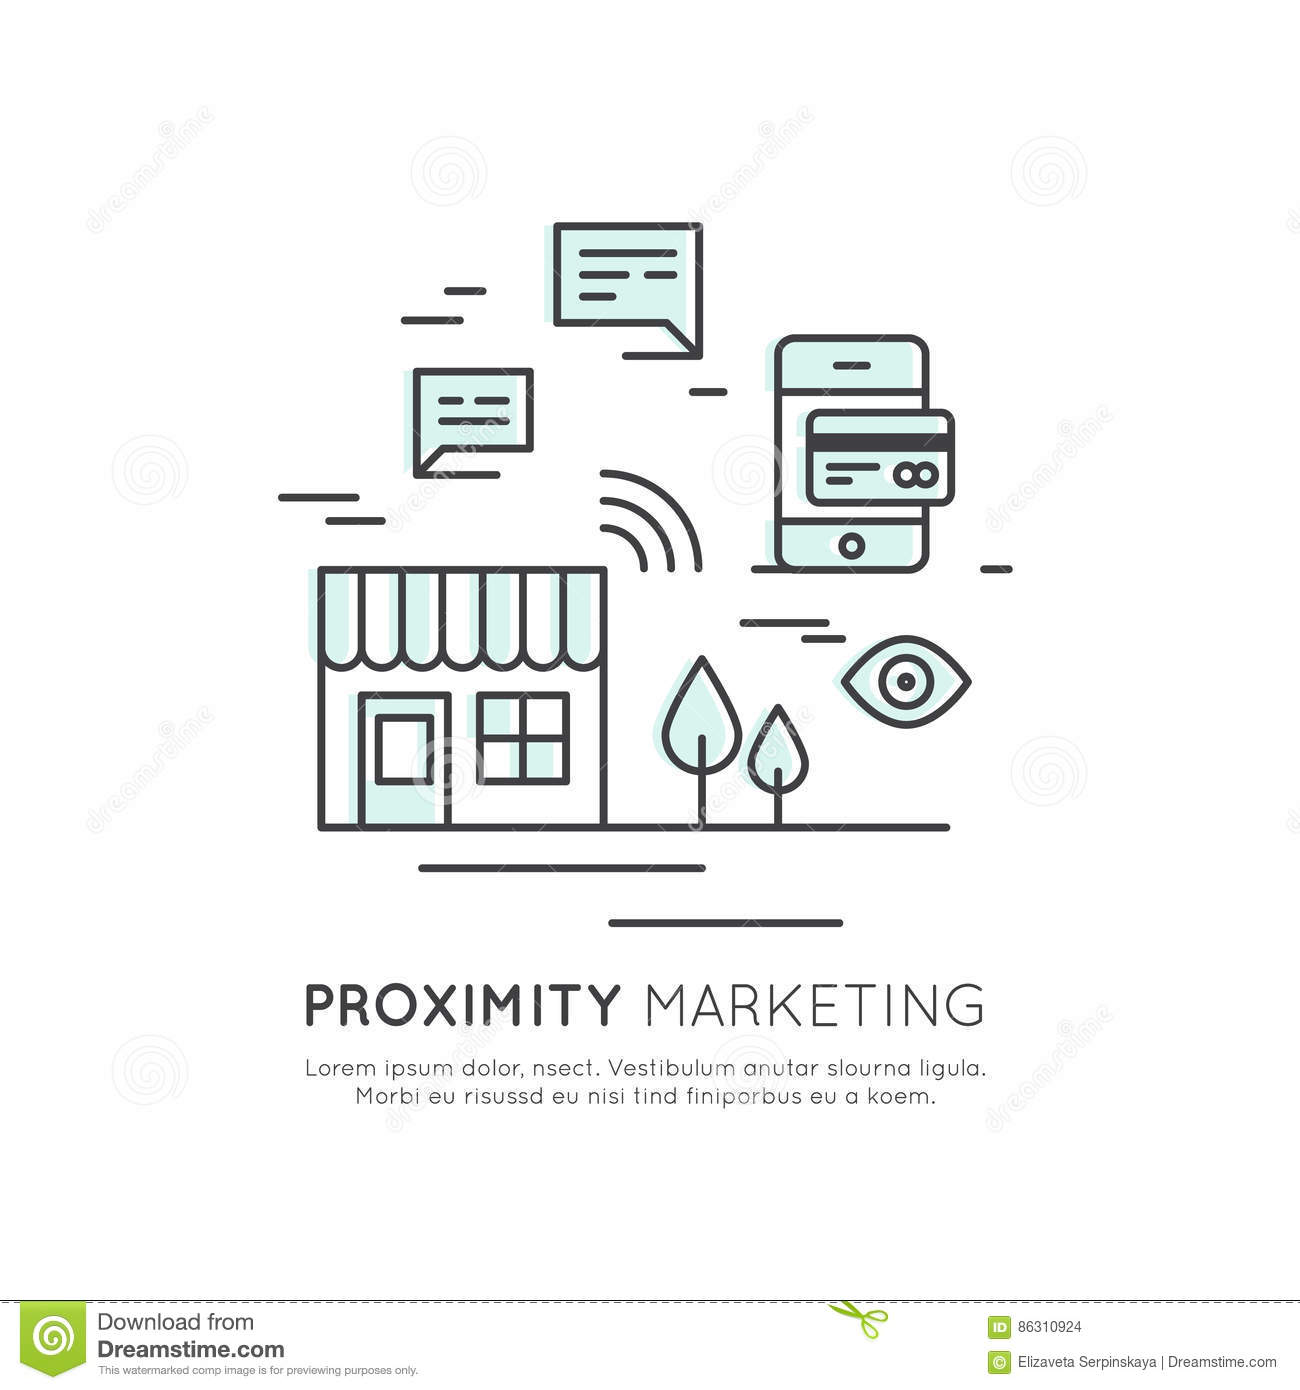 Logo Of Proximity Marketing, Public Hotspot Zone Wireless